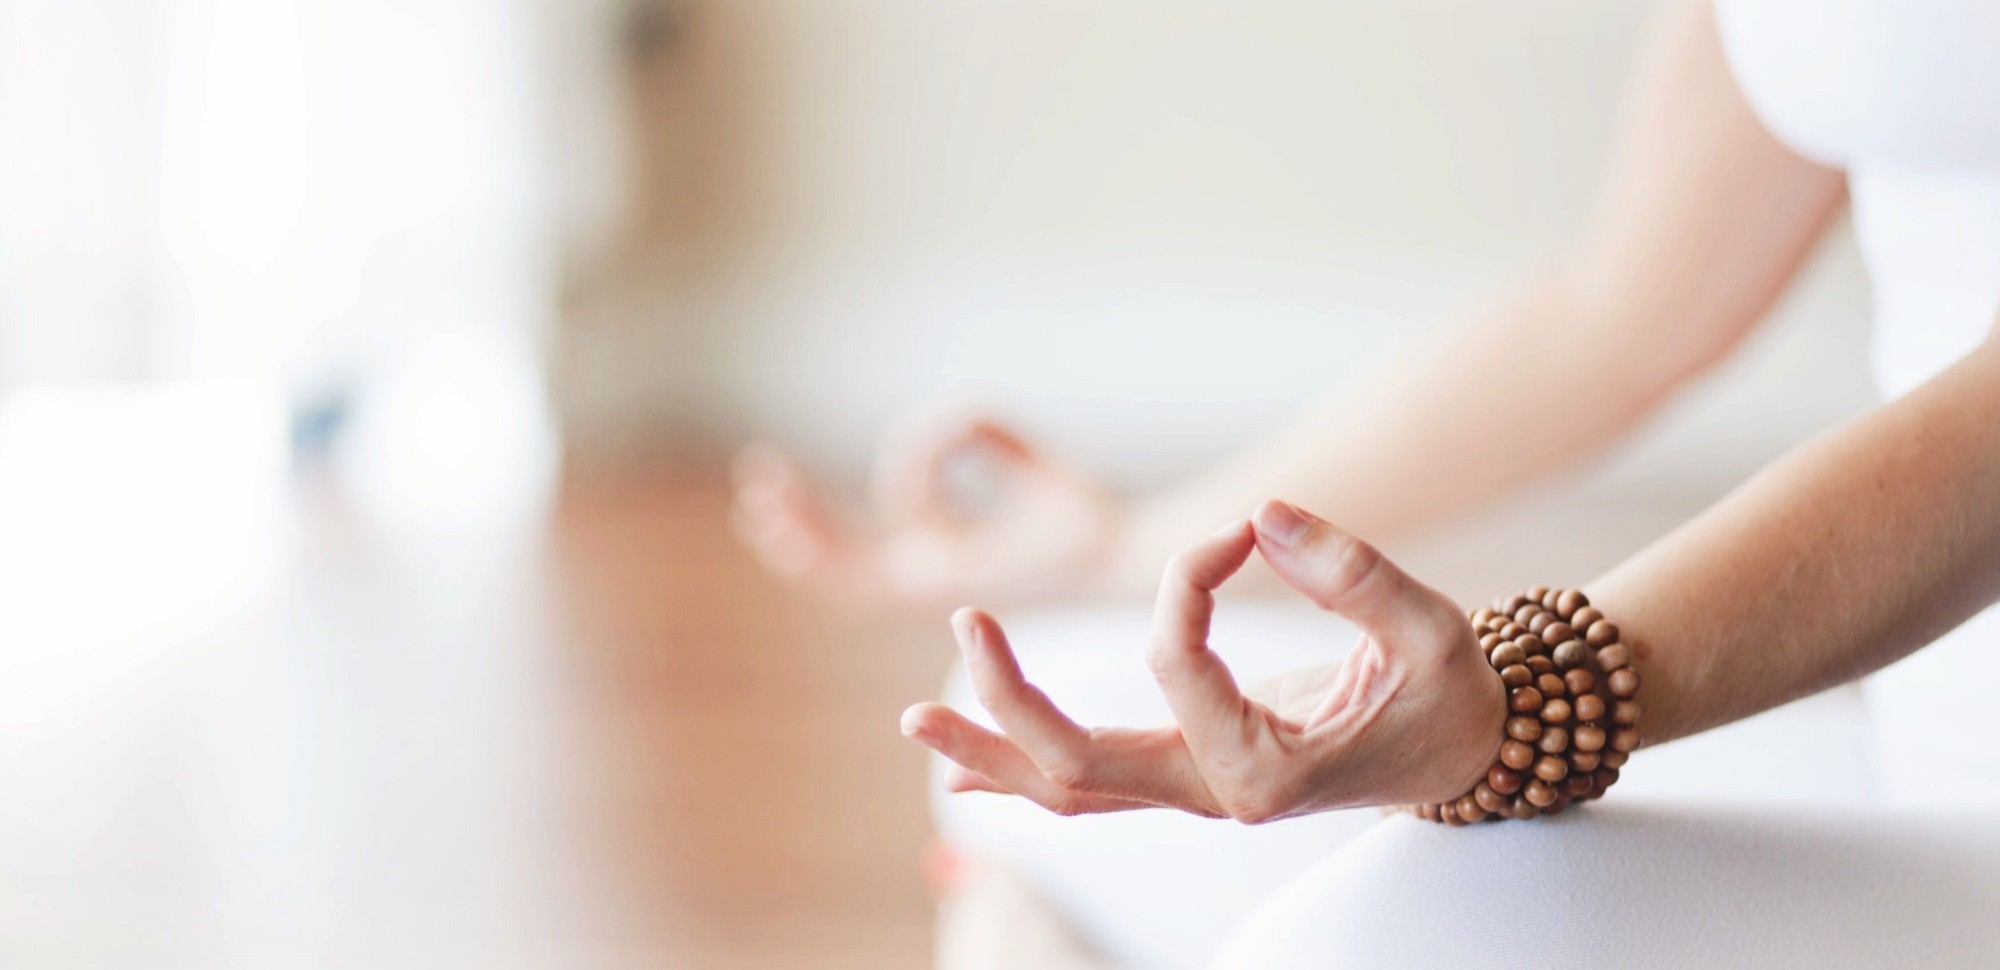 hands in ohm mudra